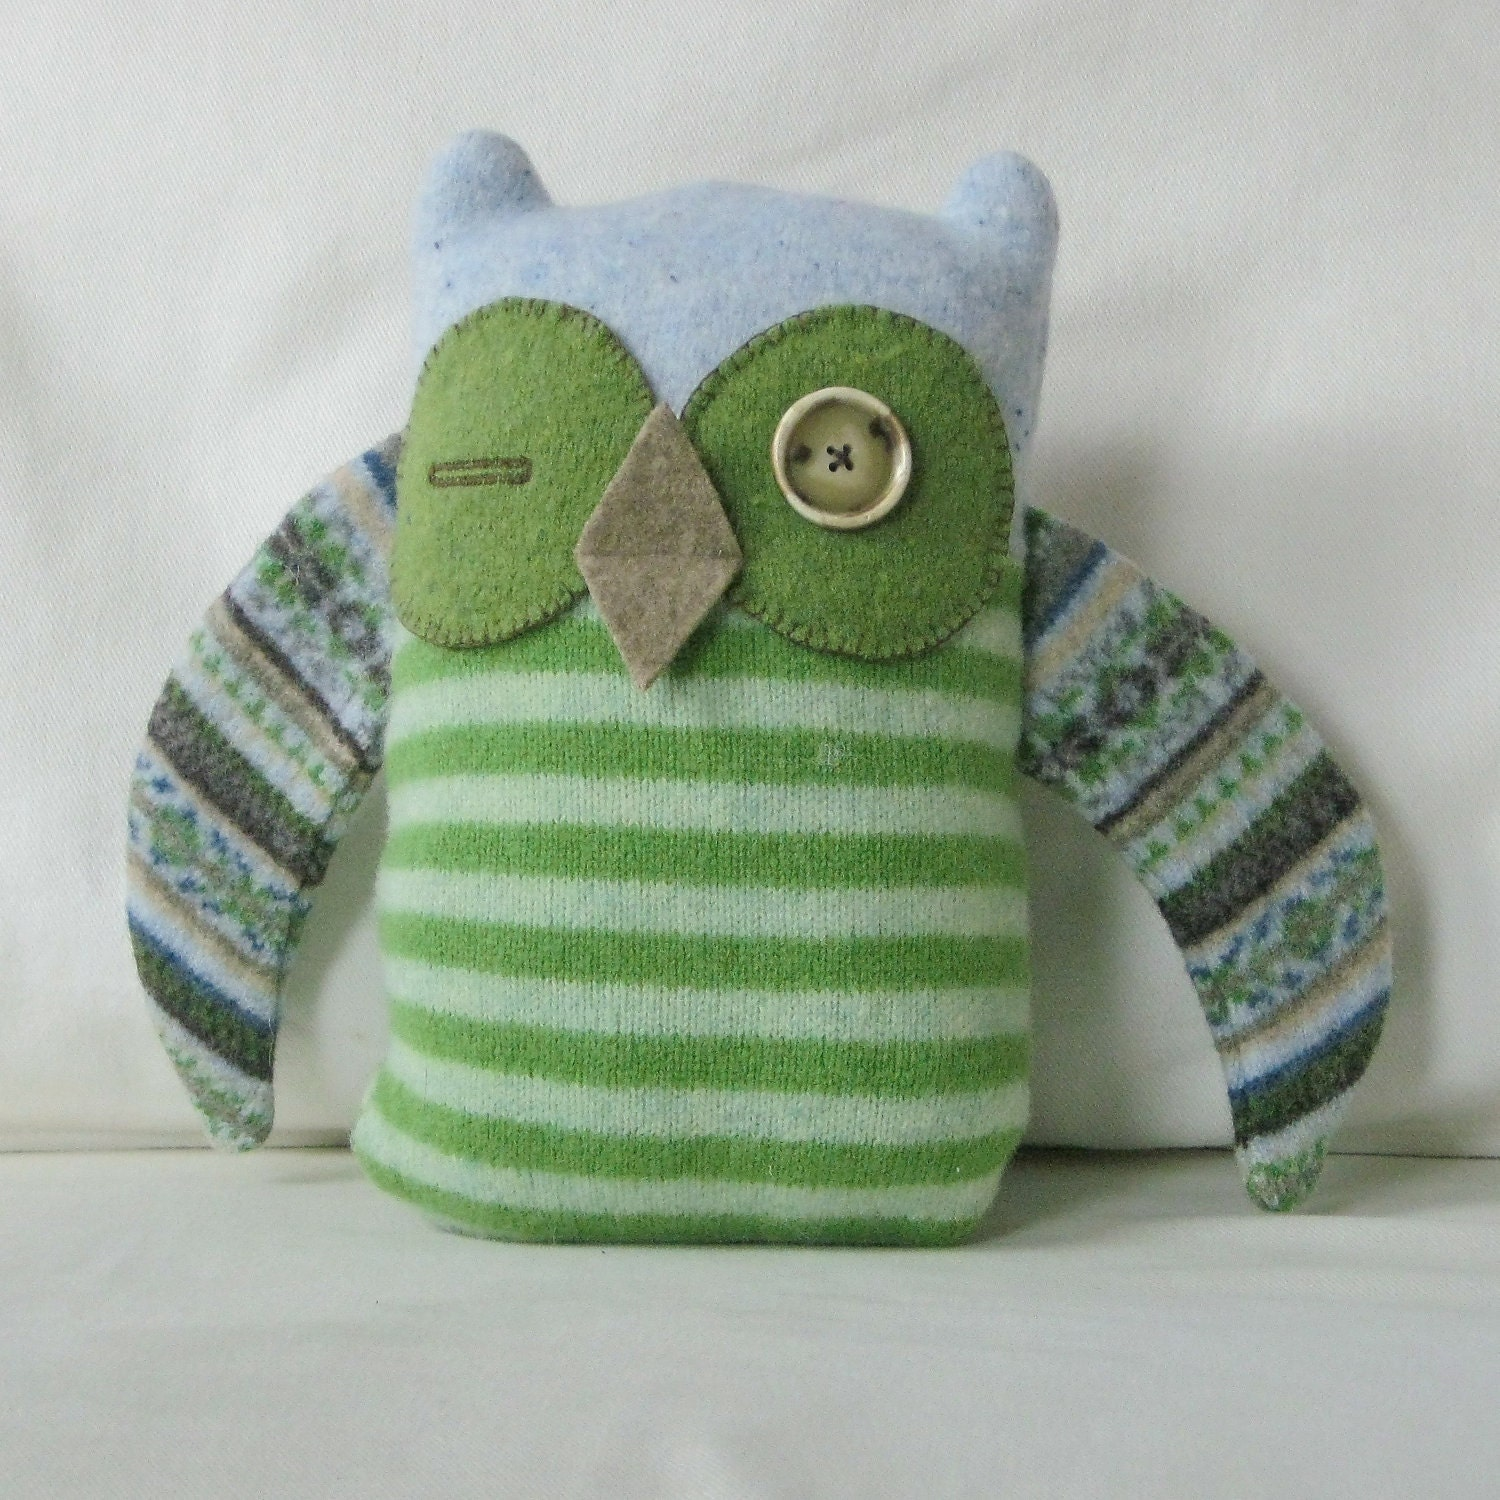 Stuffed Woodland Rescue Owl - Handmade From Felted Wool Sweaters